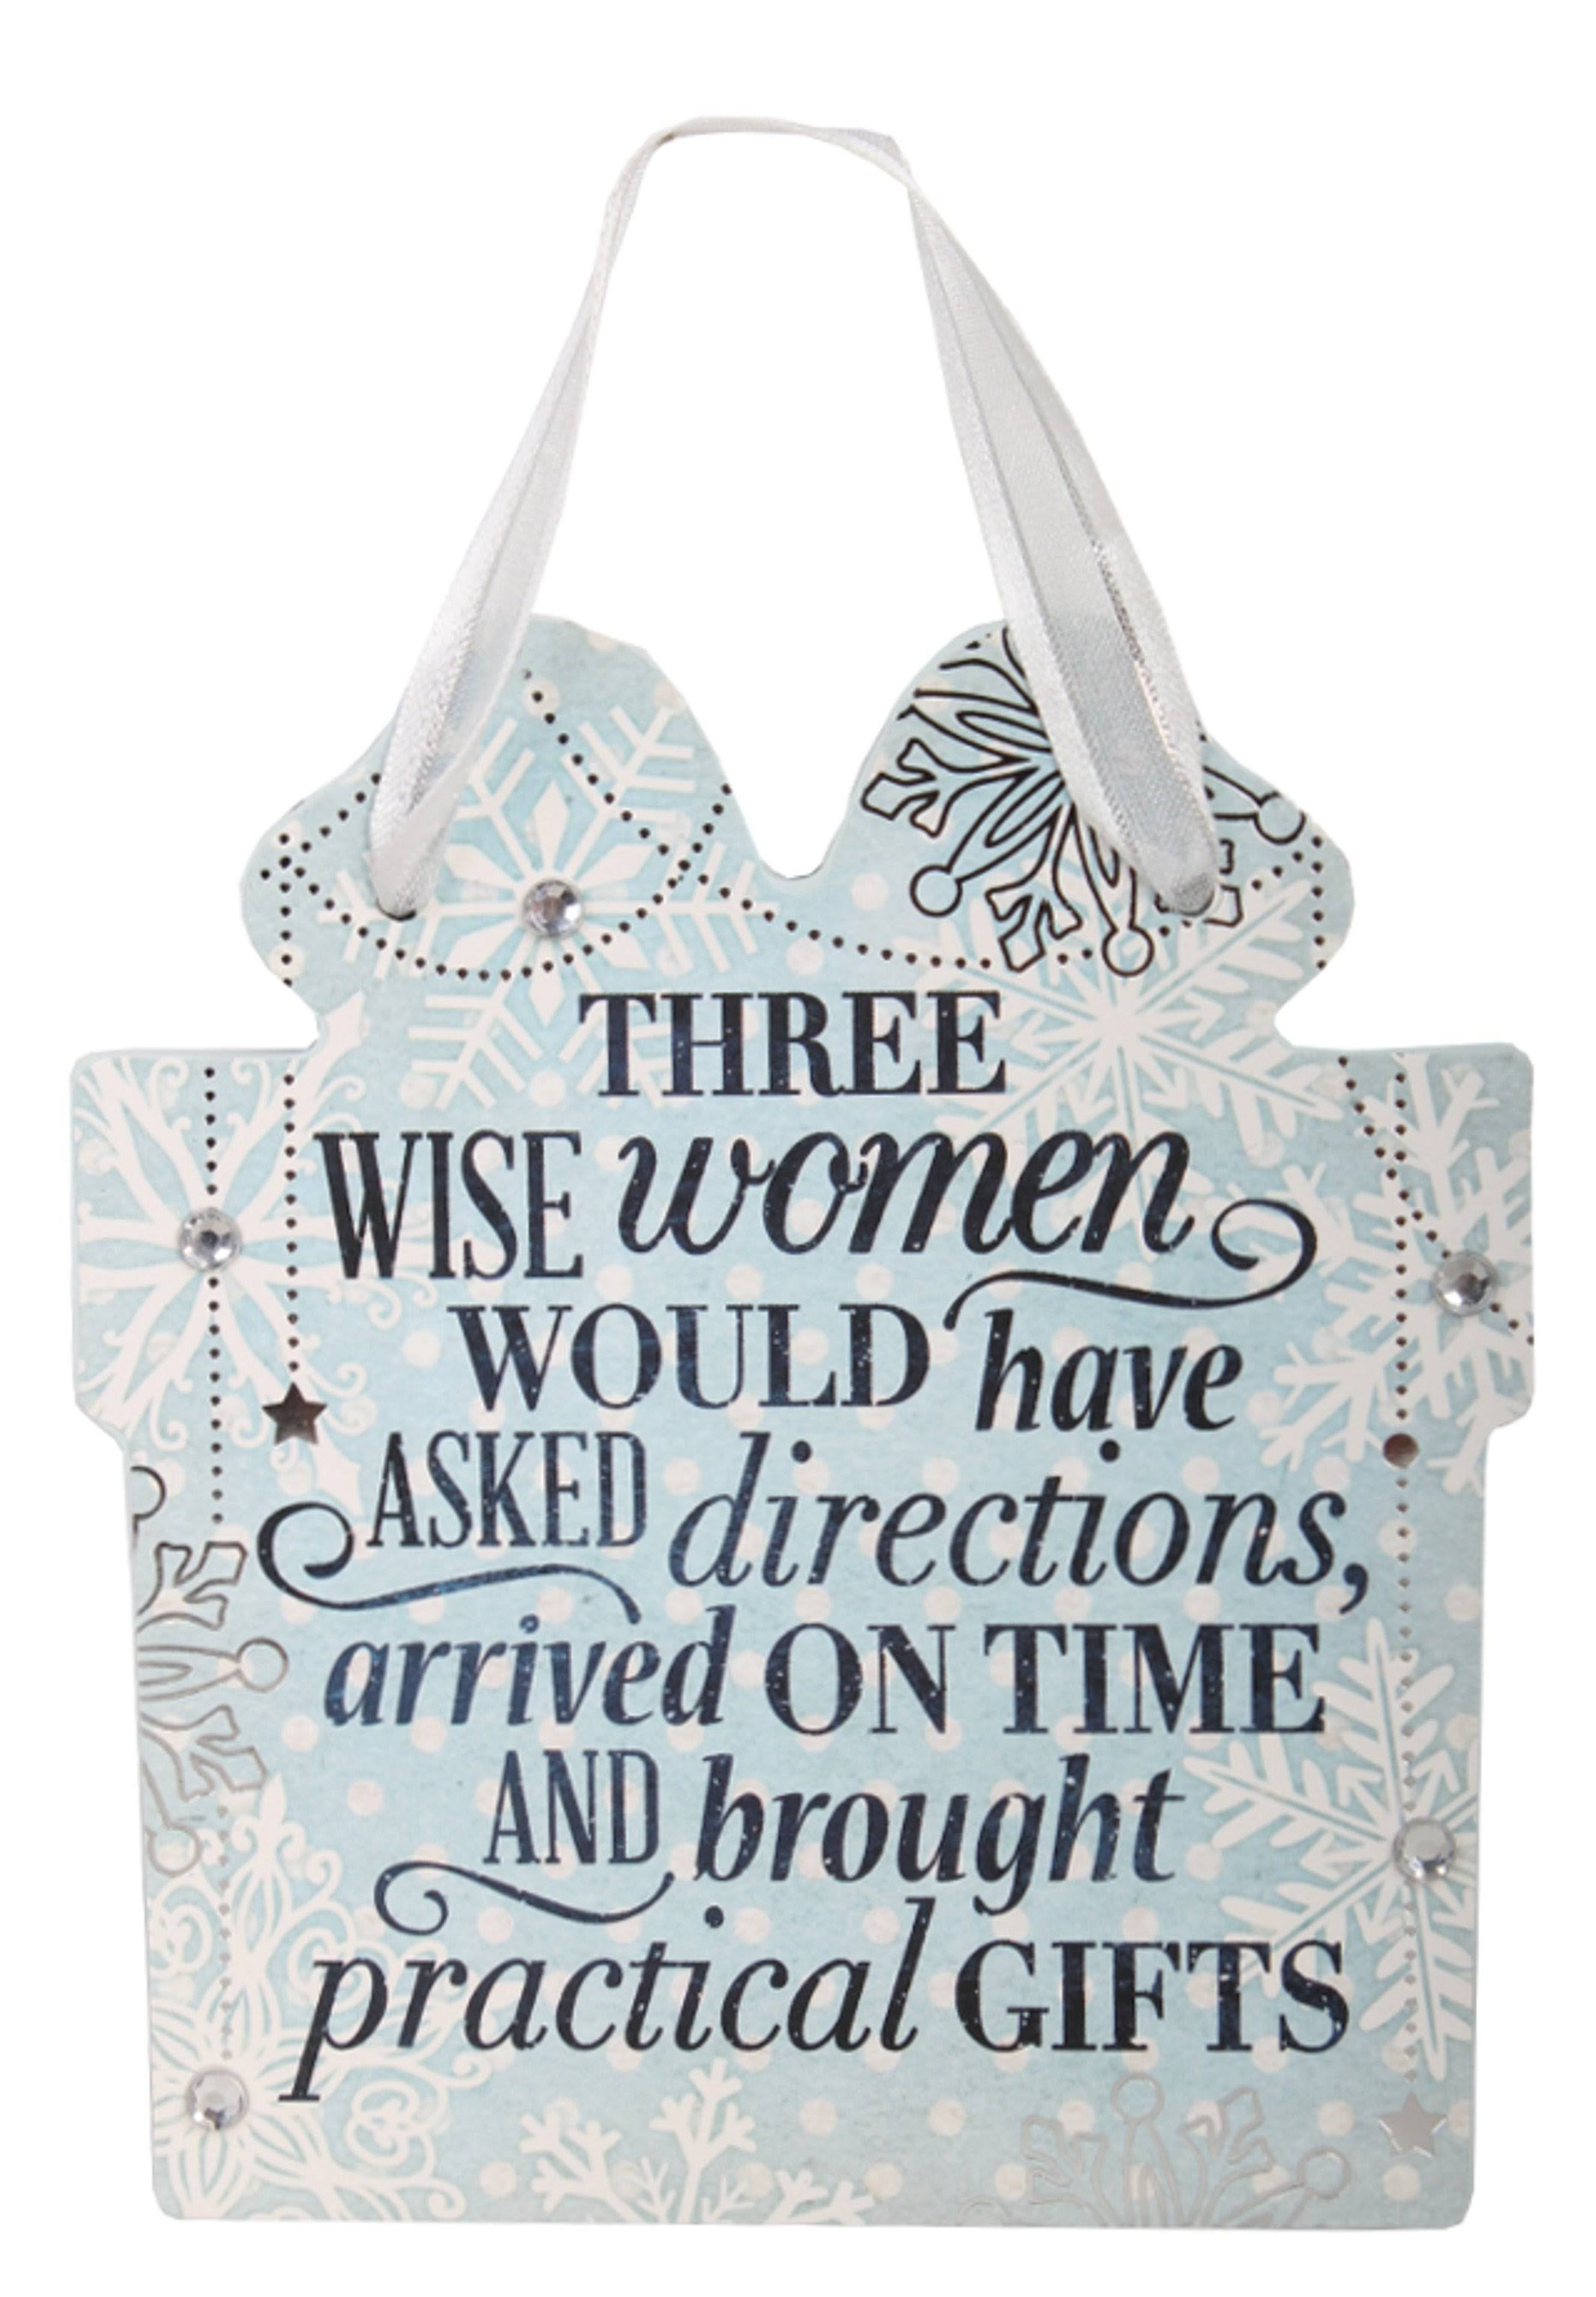 Festive Word Hanging Ornament - Three Wise Women Would